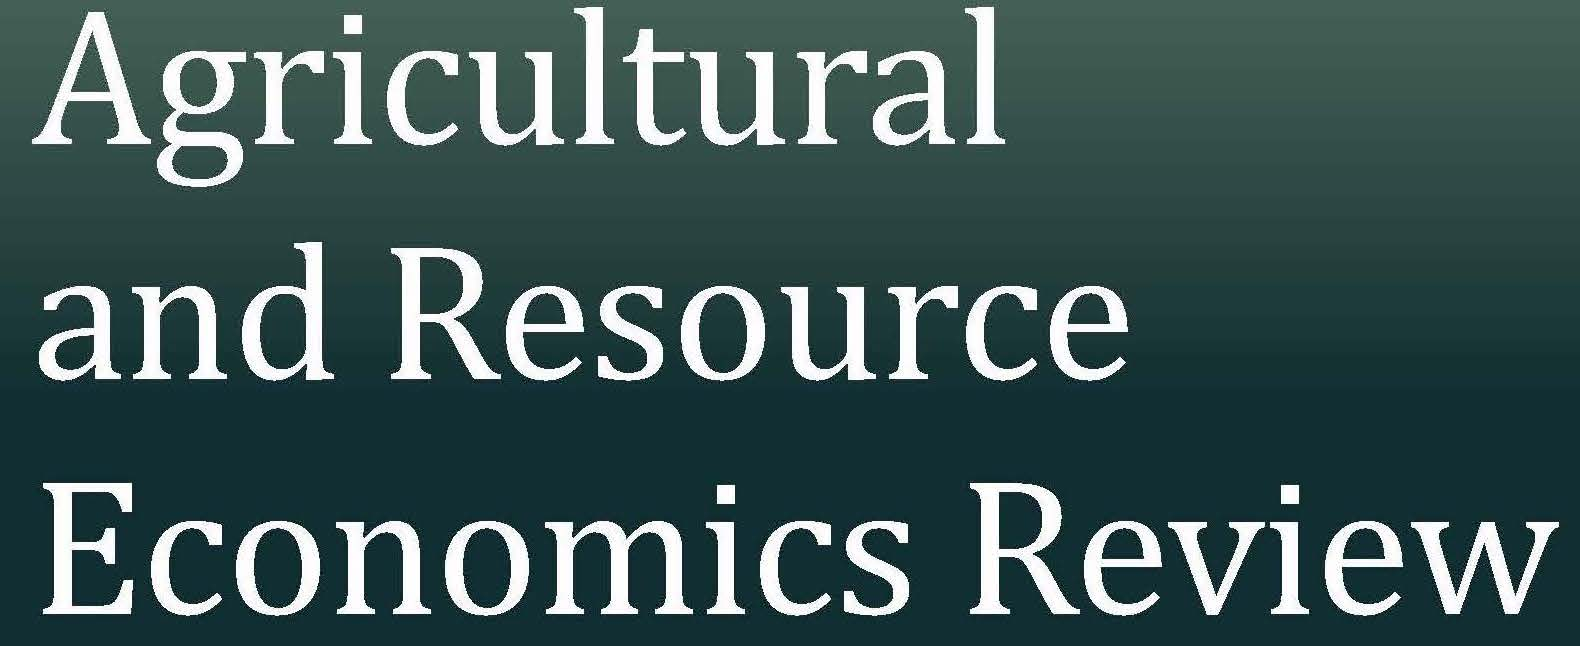 Agricultural and Resource Economics Review Special Issue